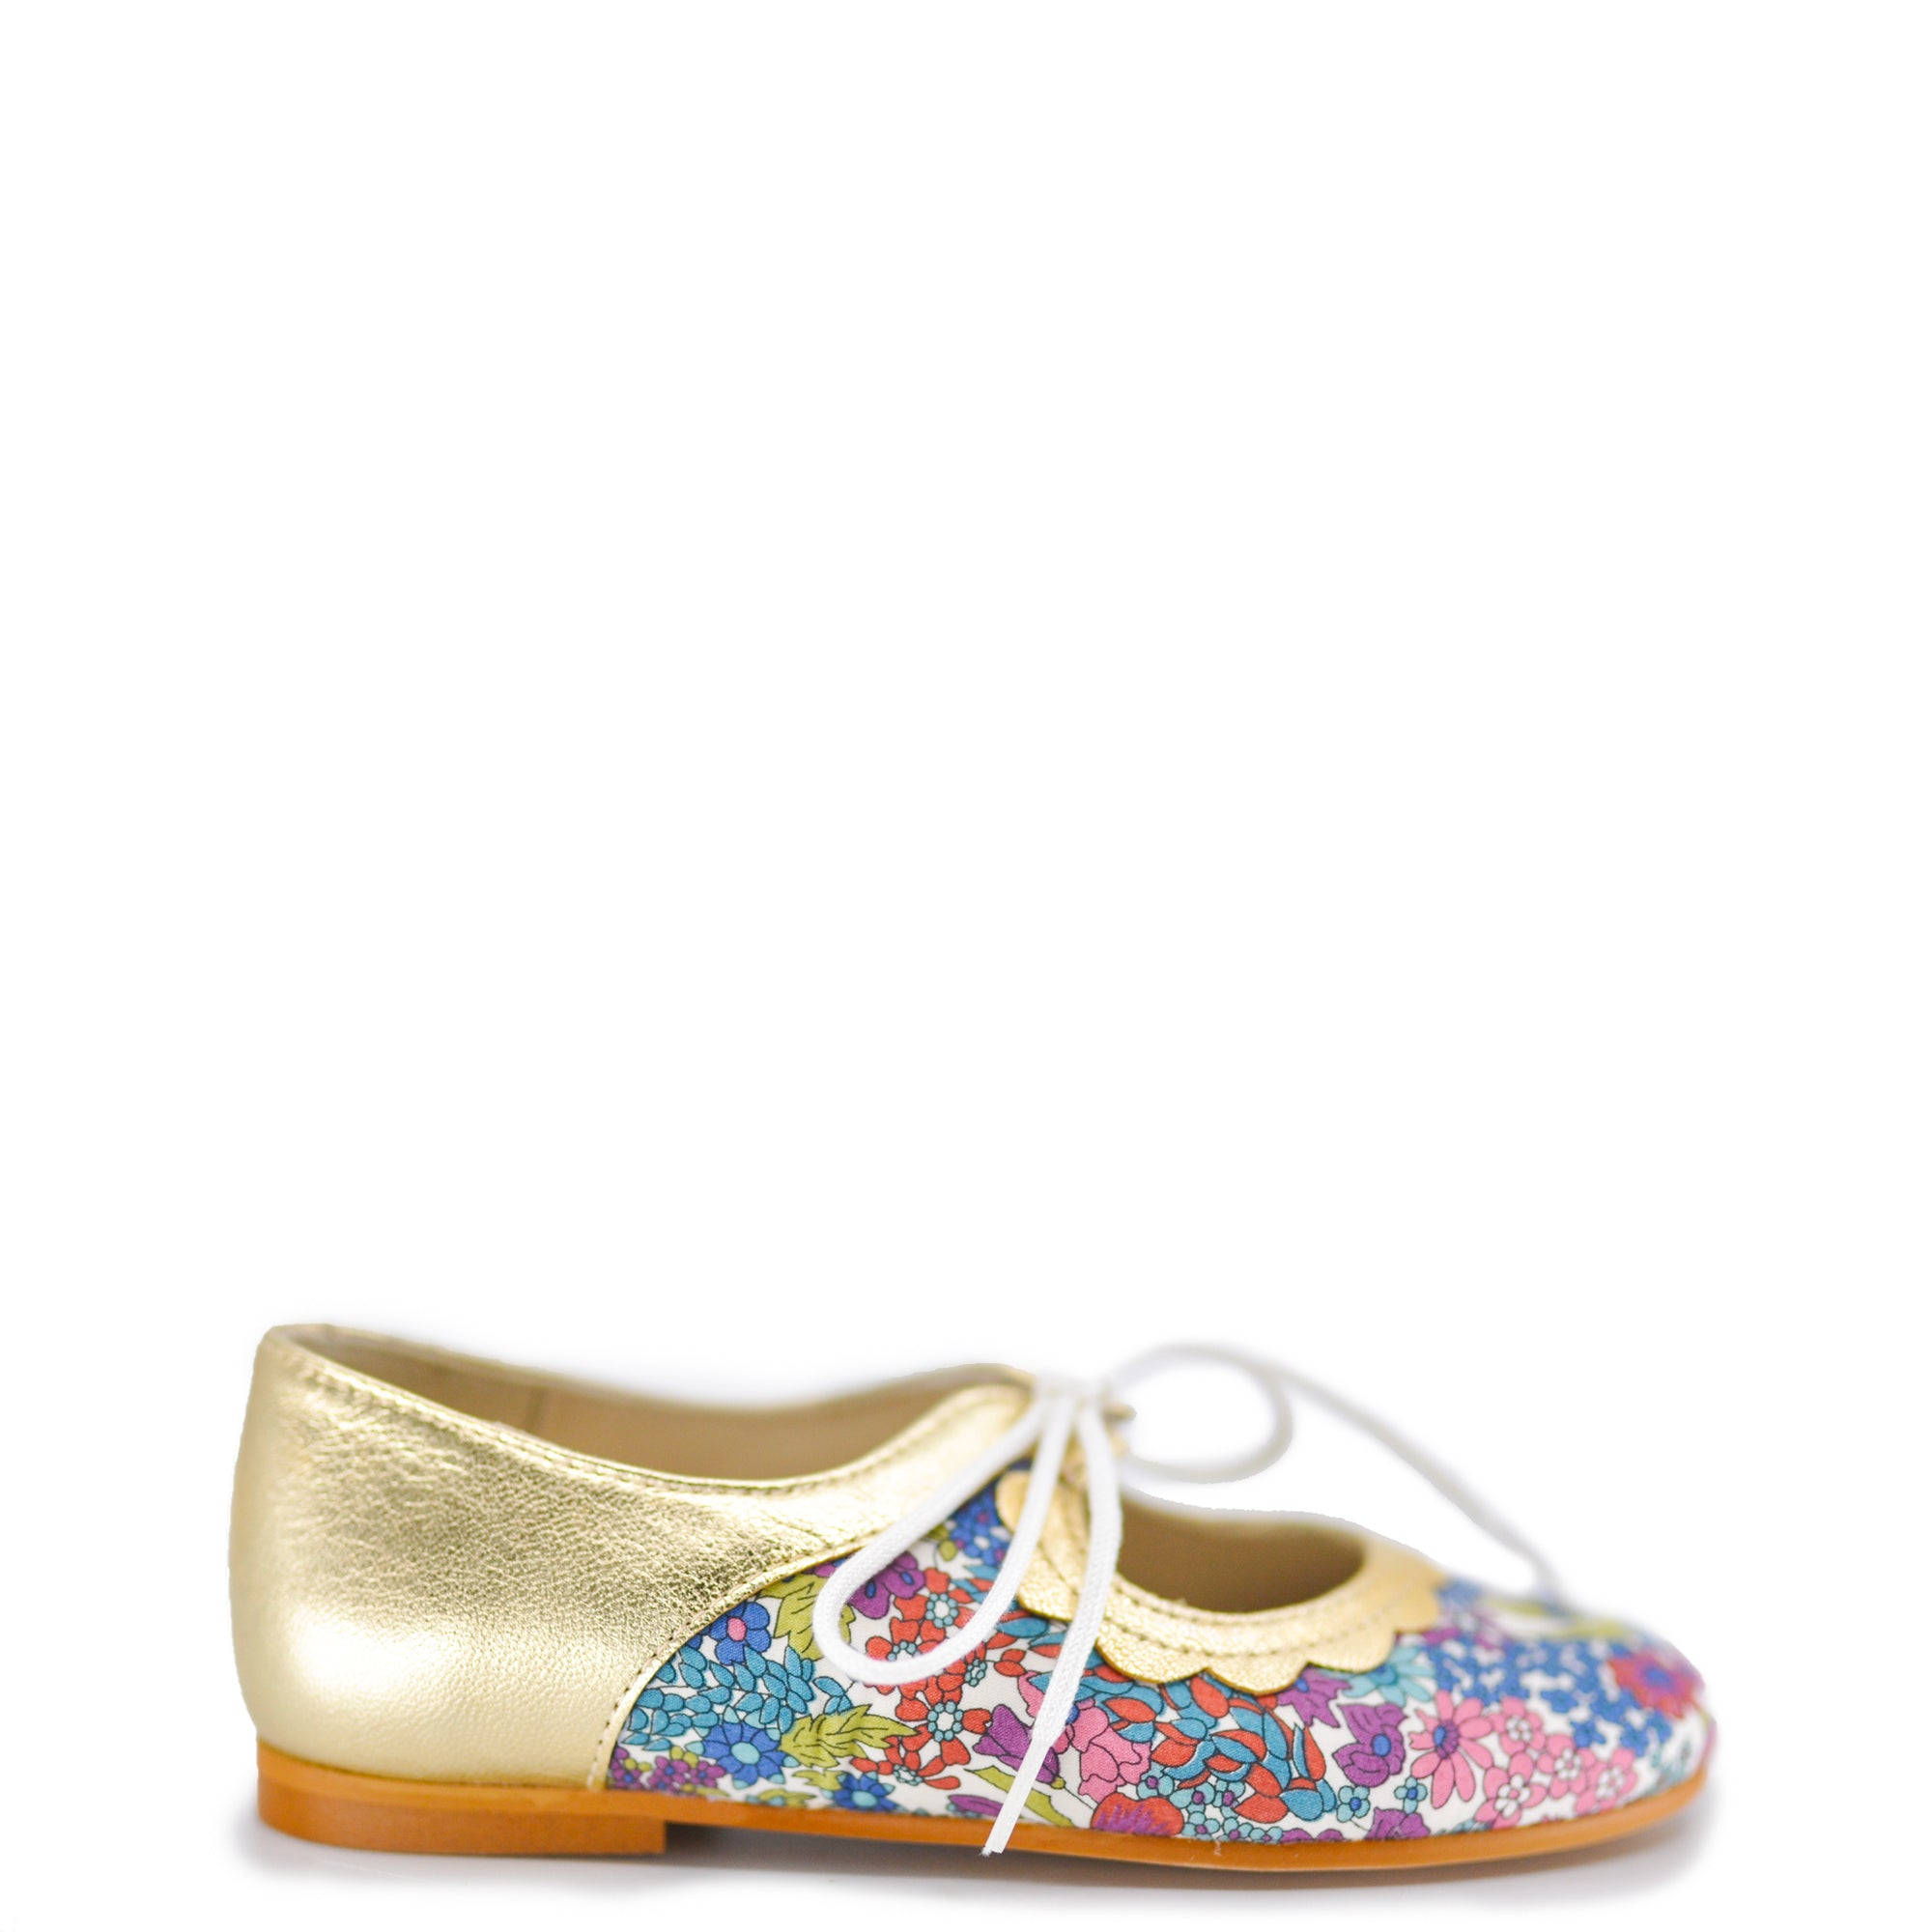 Sonatina Floral Scalloped Mary Jane-Tassel Children Shoes